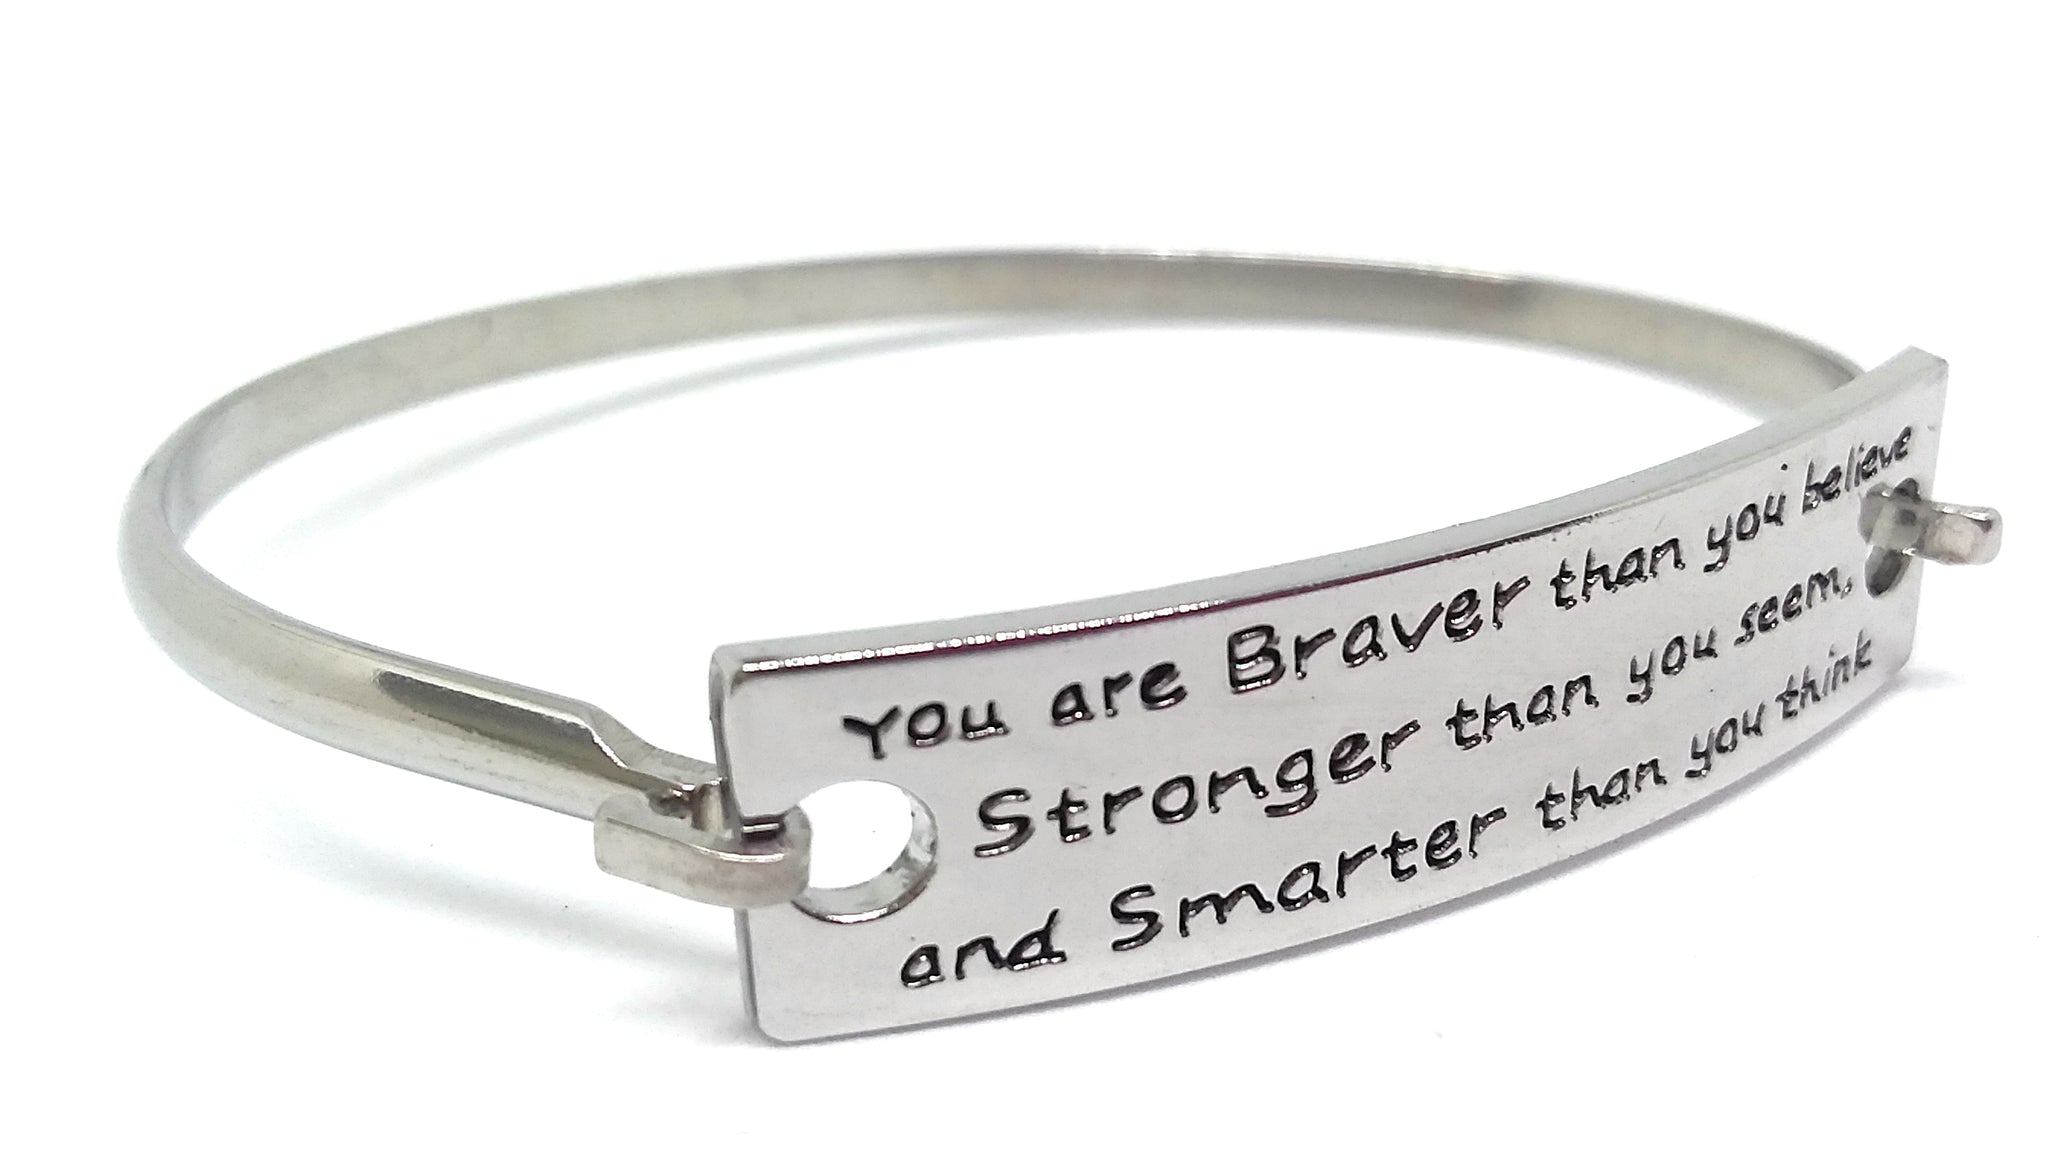 Stainless Steel Inspirational Message Connector Bangle Bracelet - You are braver than you believe stronger than you seem and smarter than you think